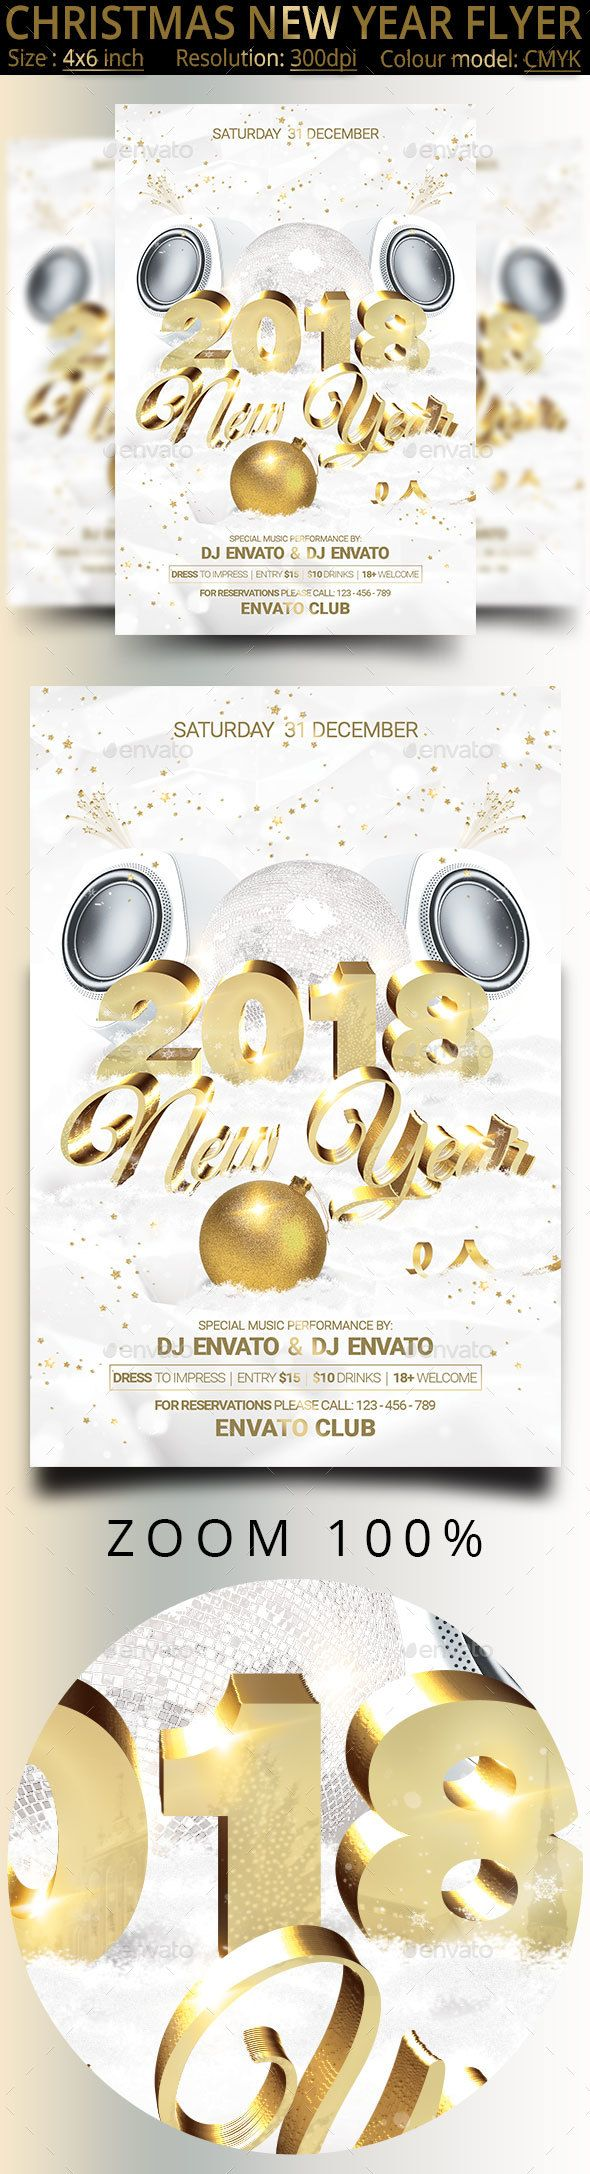 new year nepali sms - best 25 new year text ideas on pinterest ribbon  design happy